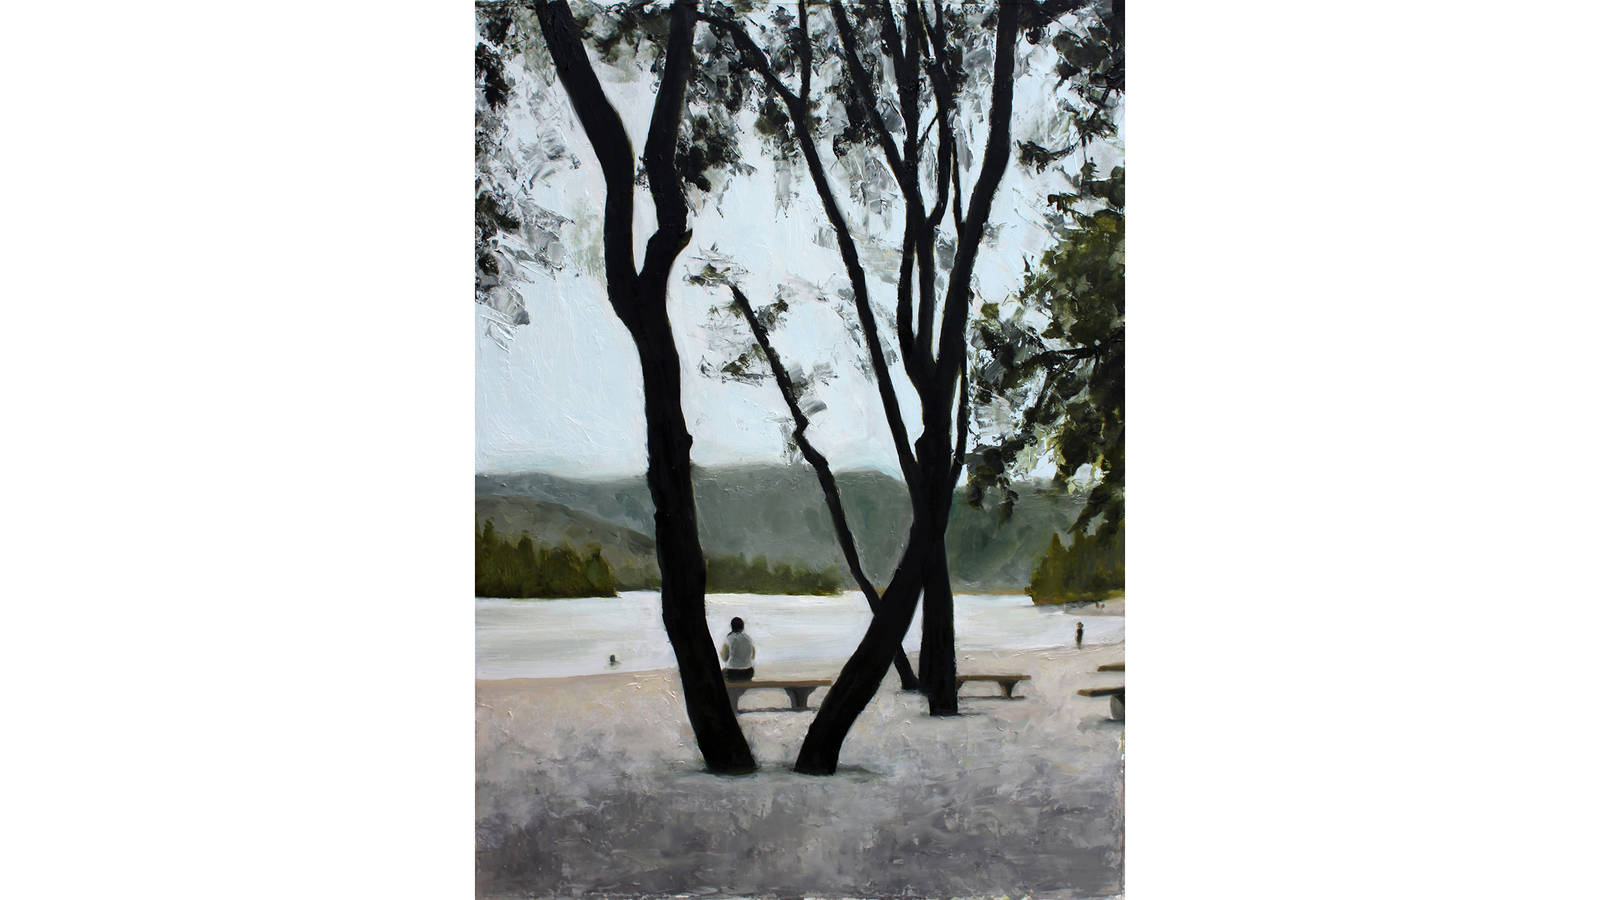 """<h3 style=""""text-align: center; padding: 50px;""""><span class=""""text-Intro-style"""">Whiskeytown Lake at Whiskeytown National Recreation Area in California. Oil on paper, 2017.</span></h3>"""